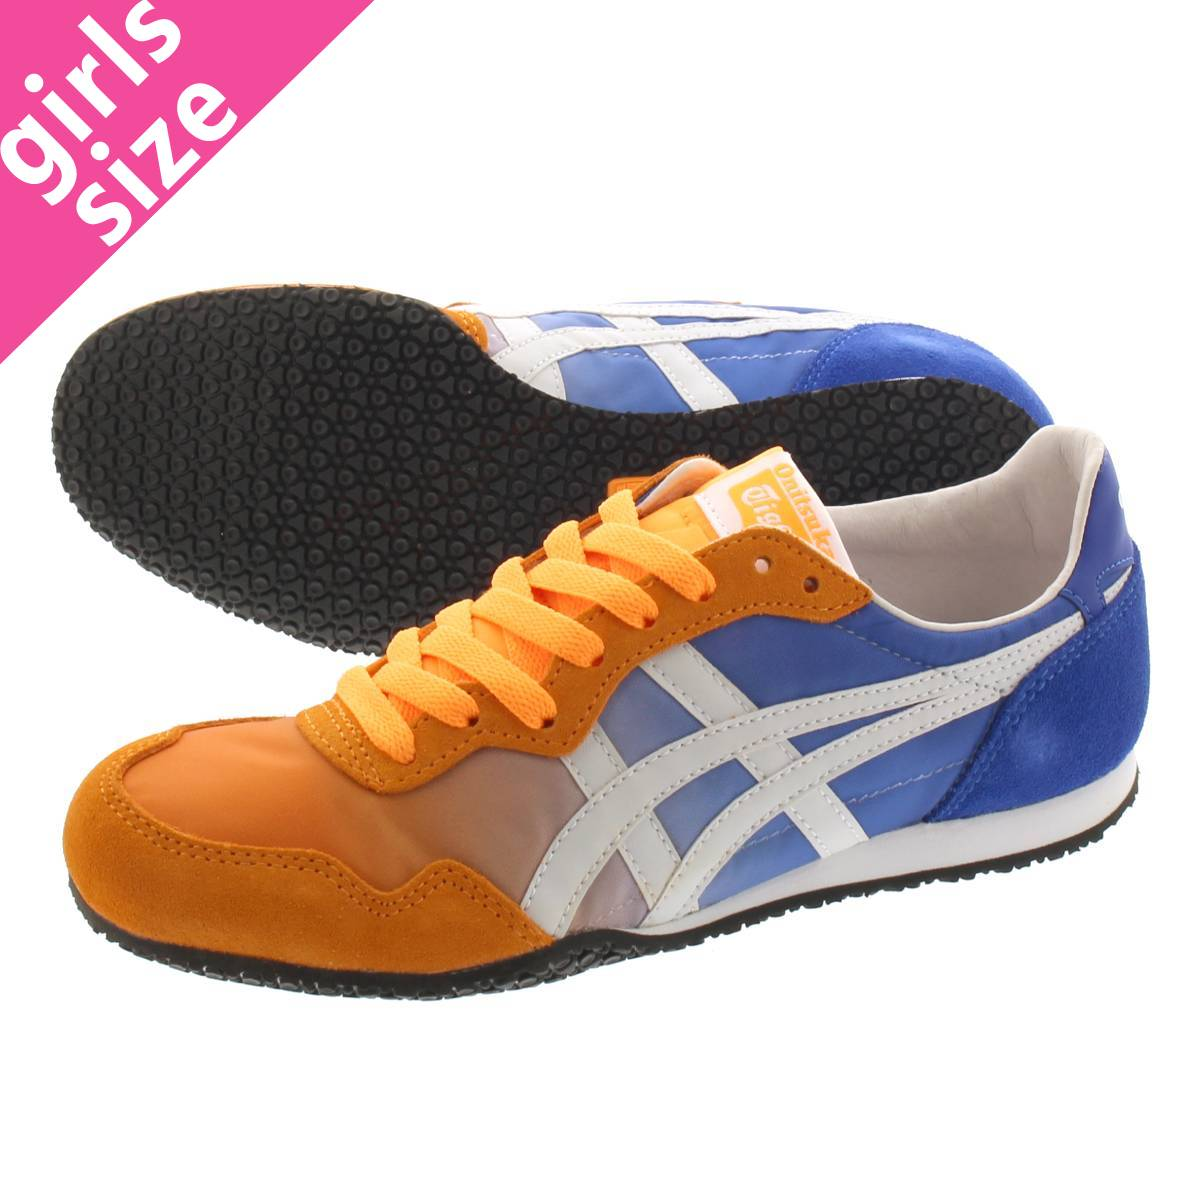 New Onitsuka Tiger SERRANO SLIP-ON D7F0N Vision Blue × Cream from Japan F//S